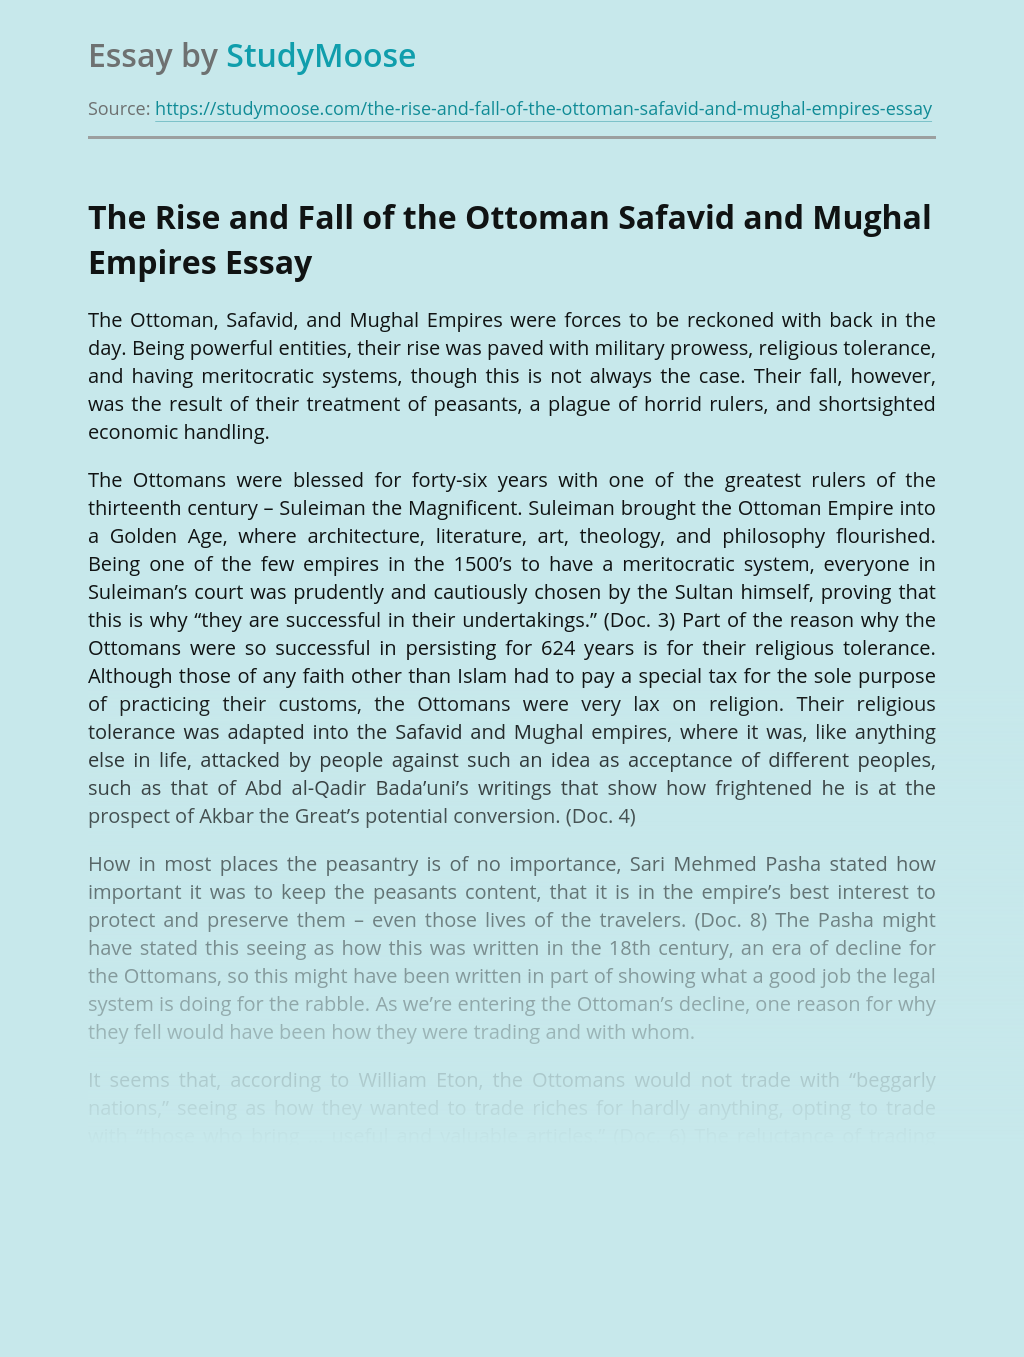 The Rise and Fall of the Ottoman Safavid and Mughal Empires